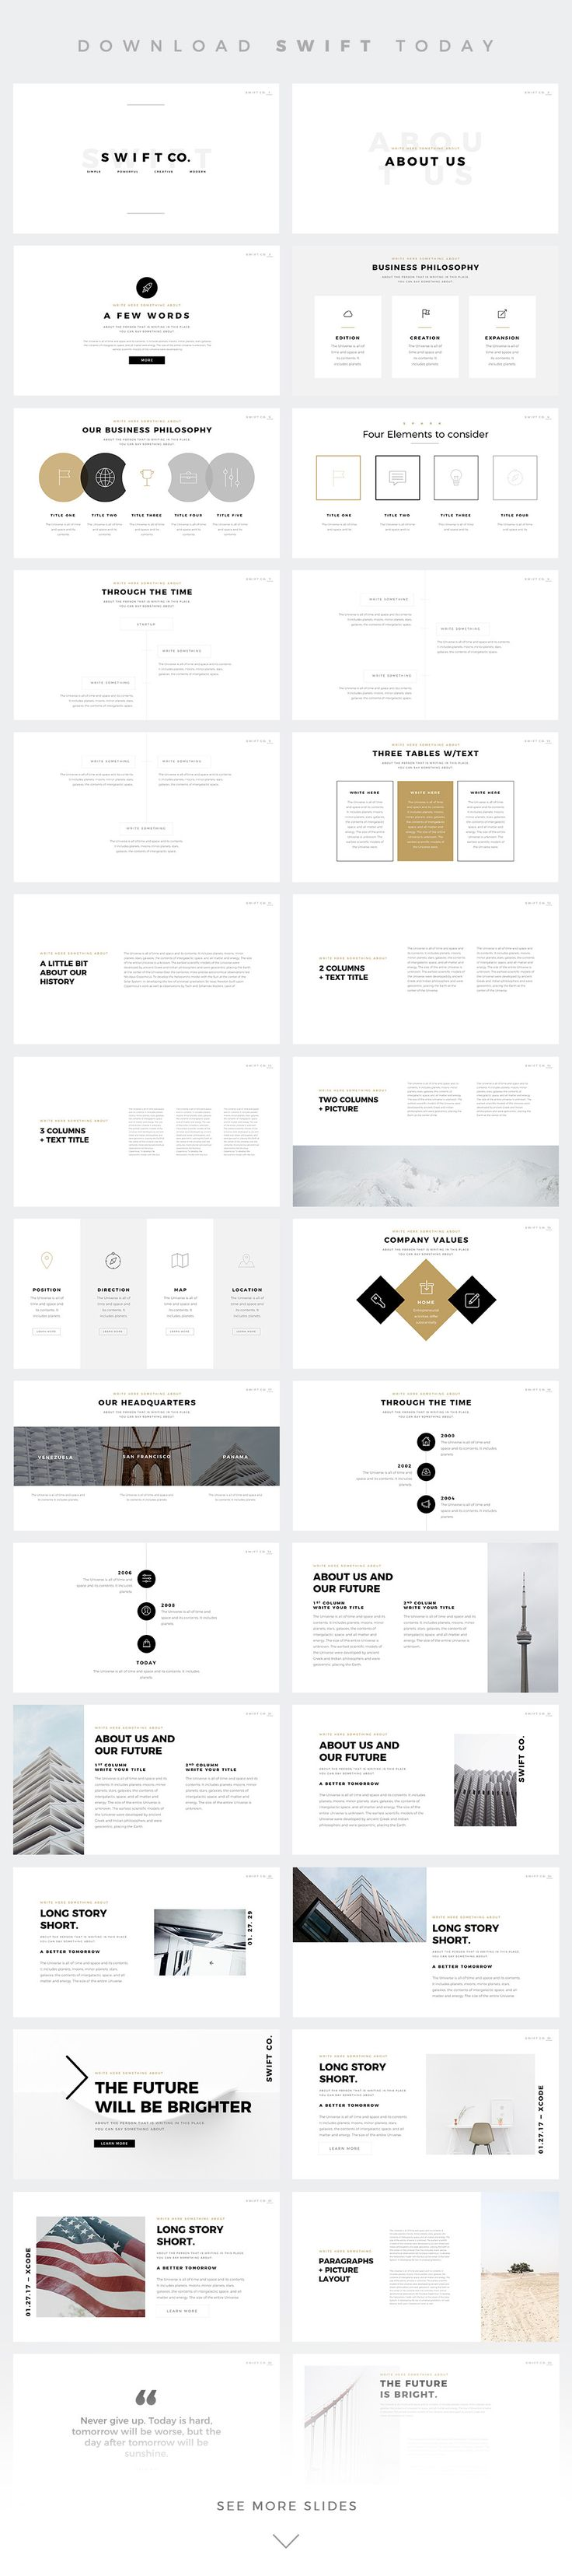 SWIFT Minimal Keynote Template on Behance